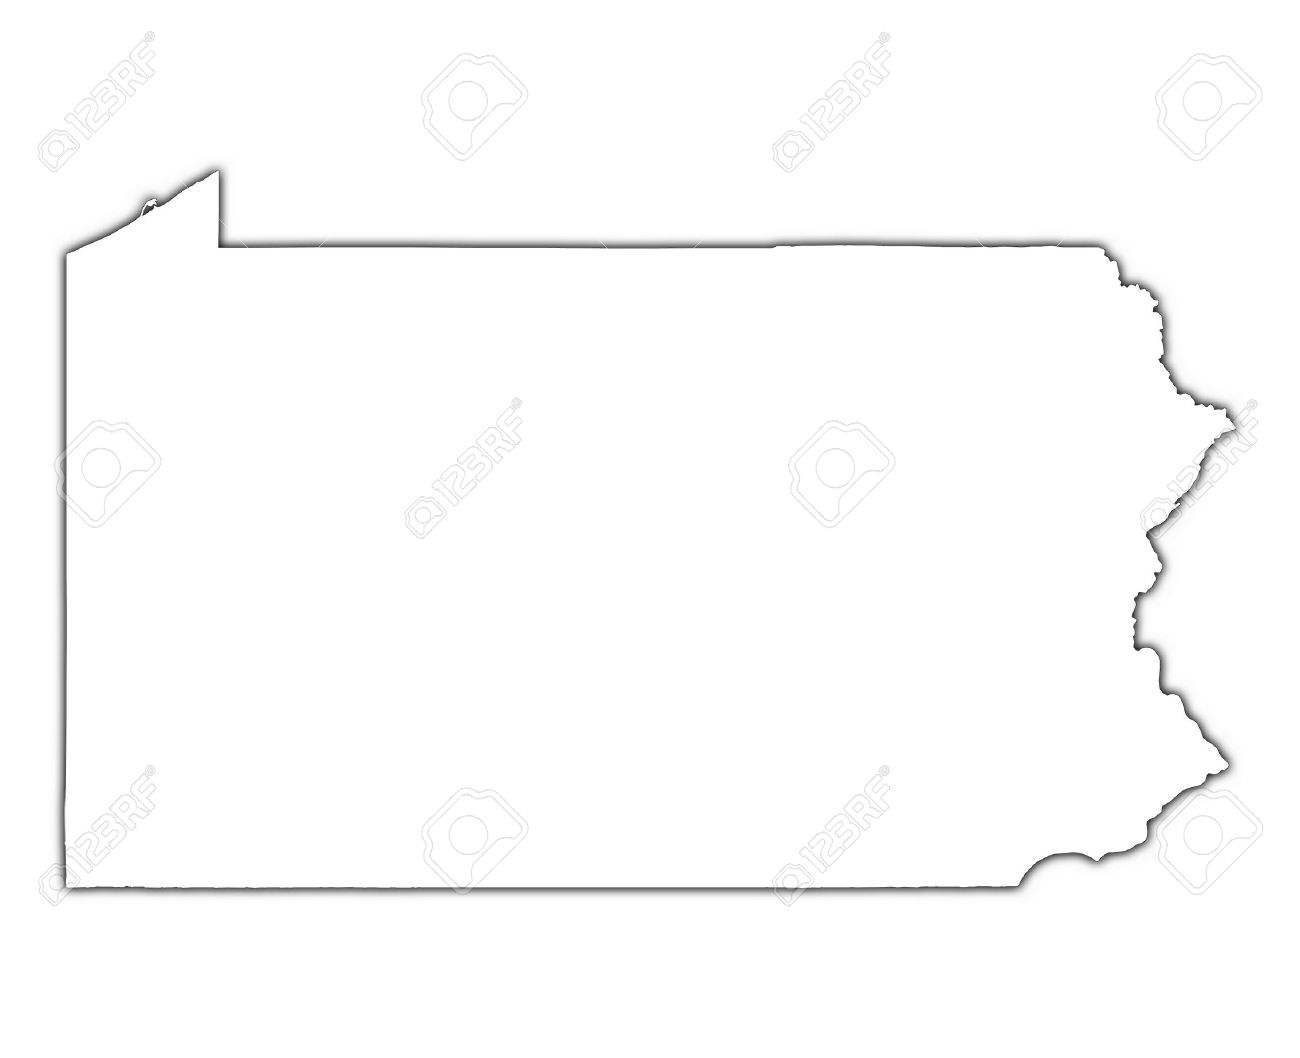 Pennsylvania USA Outline Map With Shadow Detailed Mercator - Pennsylvania in usa map